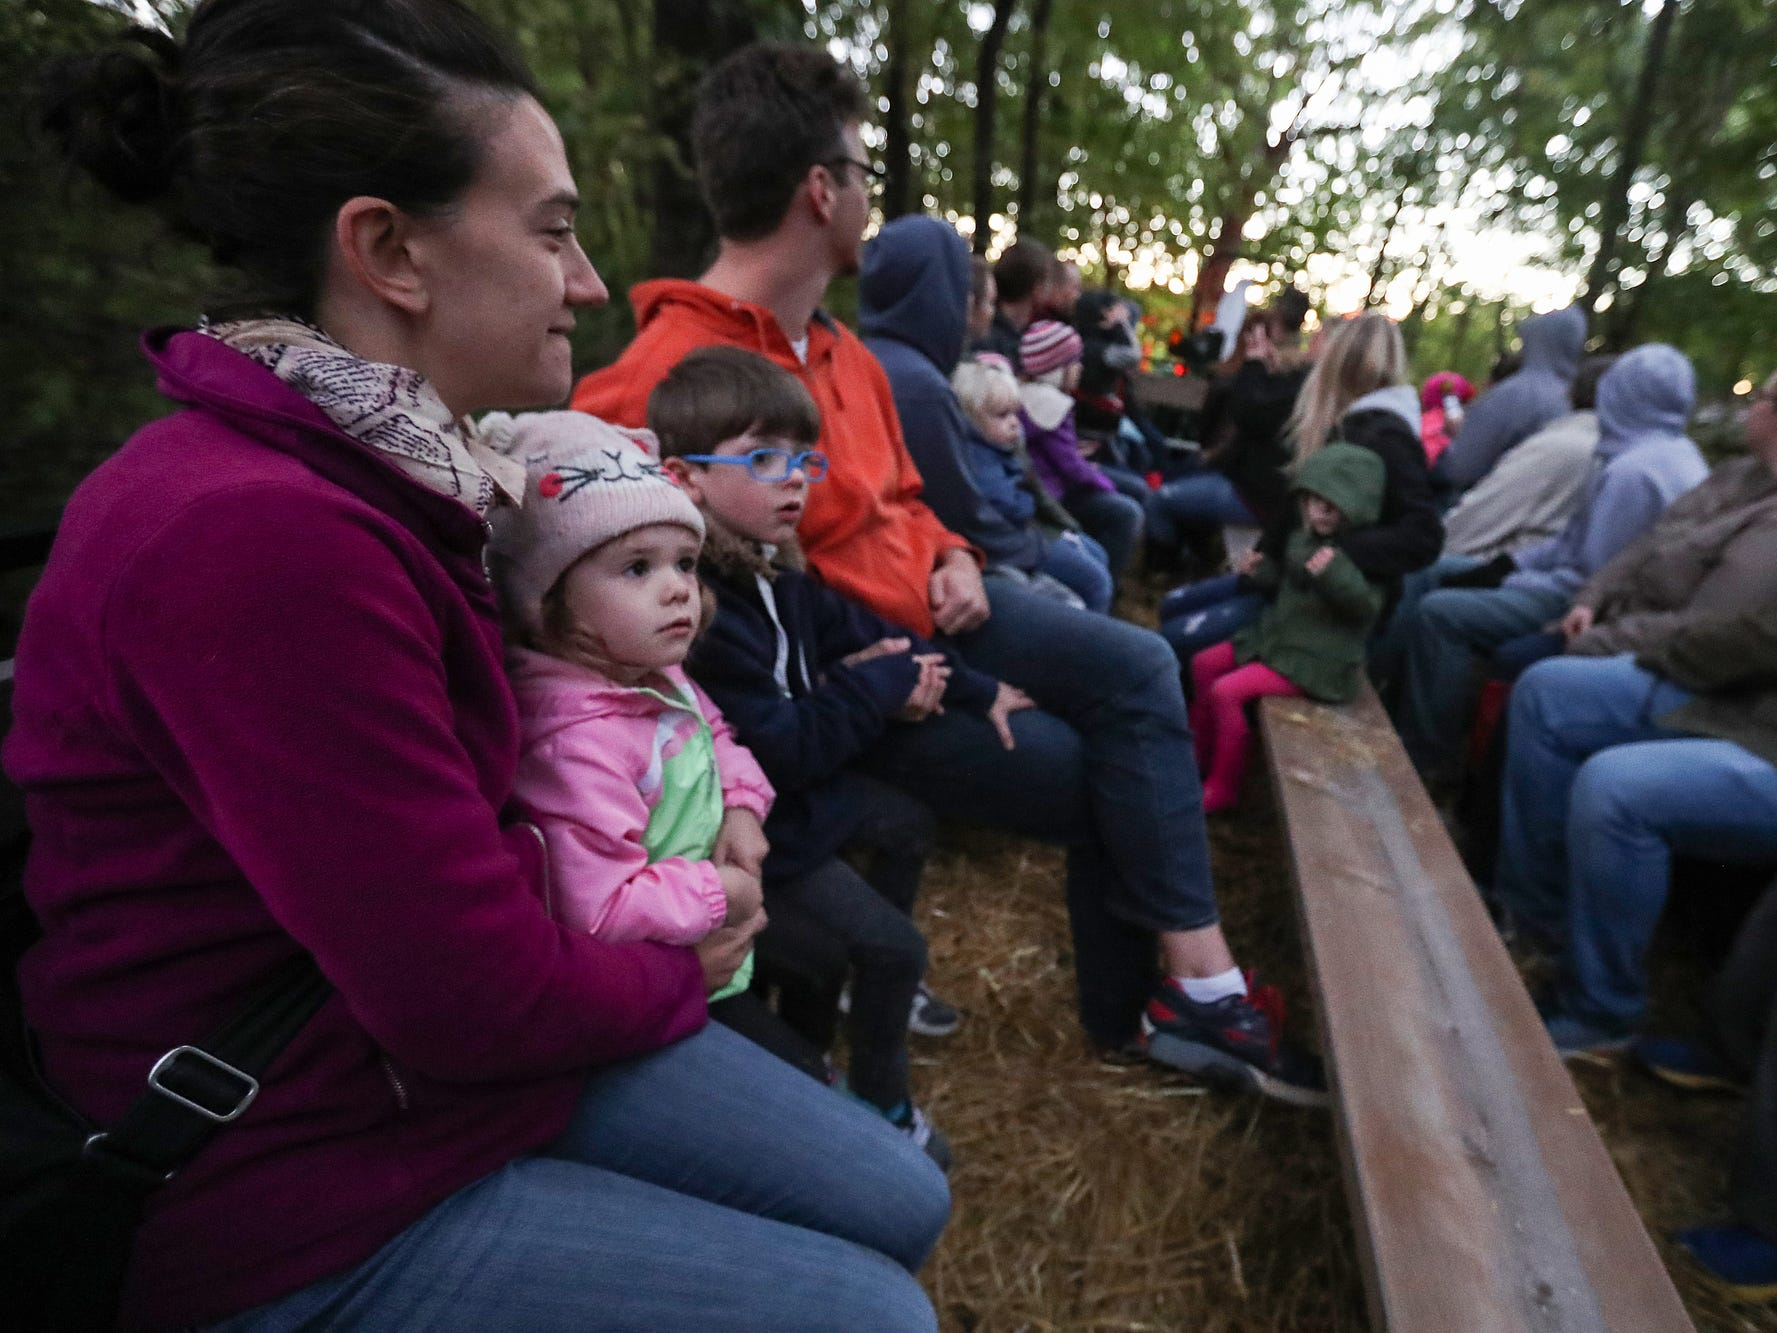 A wagon carries guests on a spooky forest ride on opening night of the annual Headless Horseman Halloween festival at Conner Prairie in Fishers, Ind., Thursday, Oct. 11, 2018. The festival is held from 6 to 9 p.m. every Thursday through Sunday, ending Oct. 28, 2018.